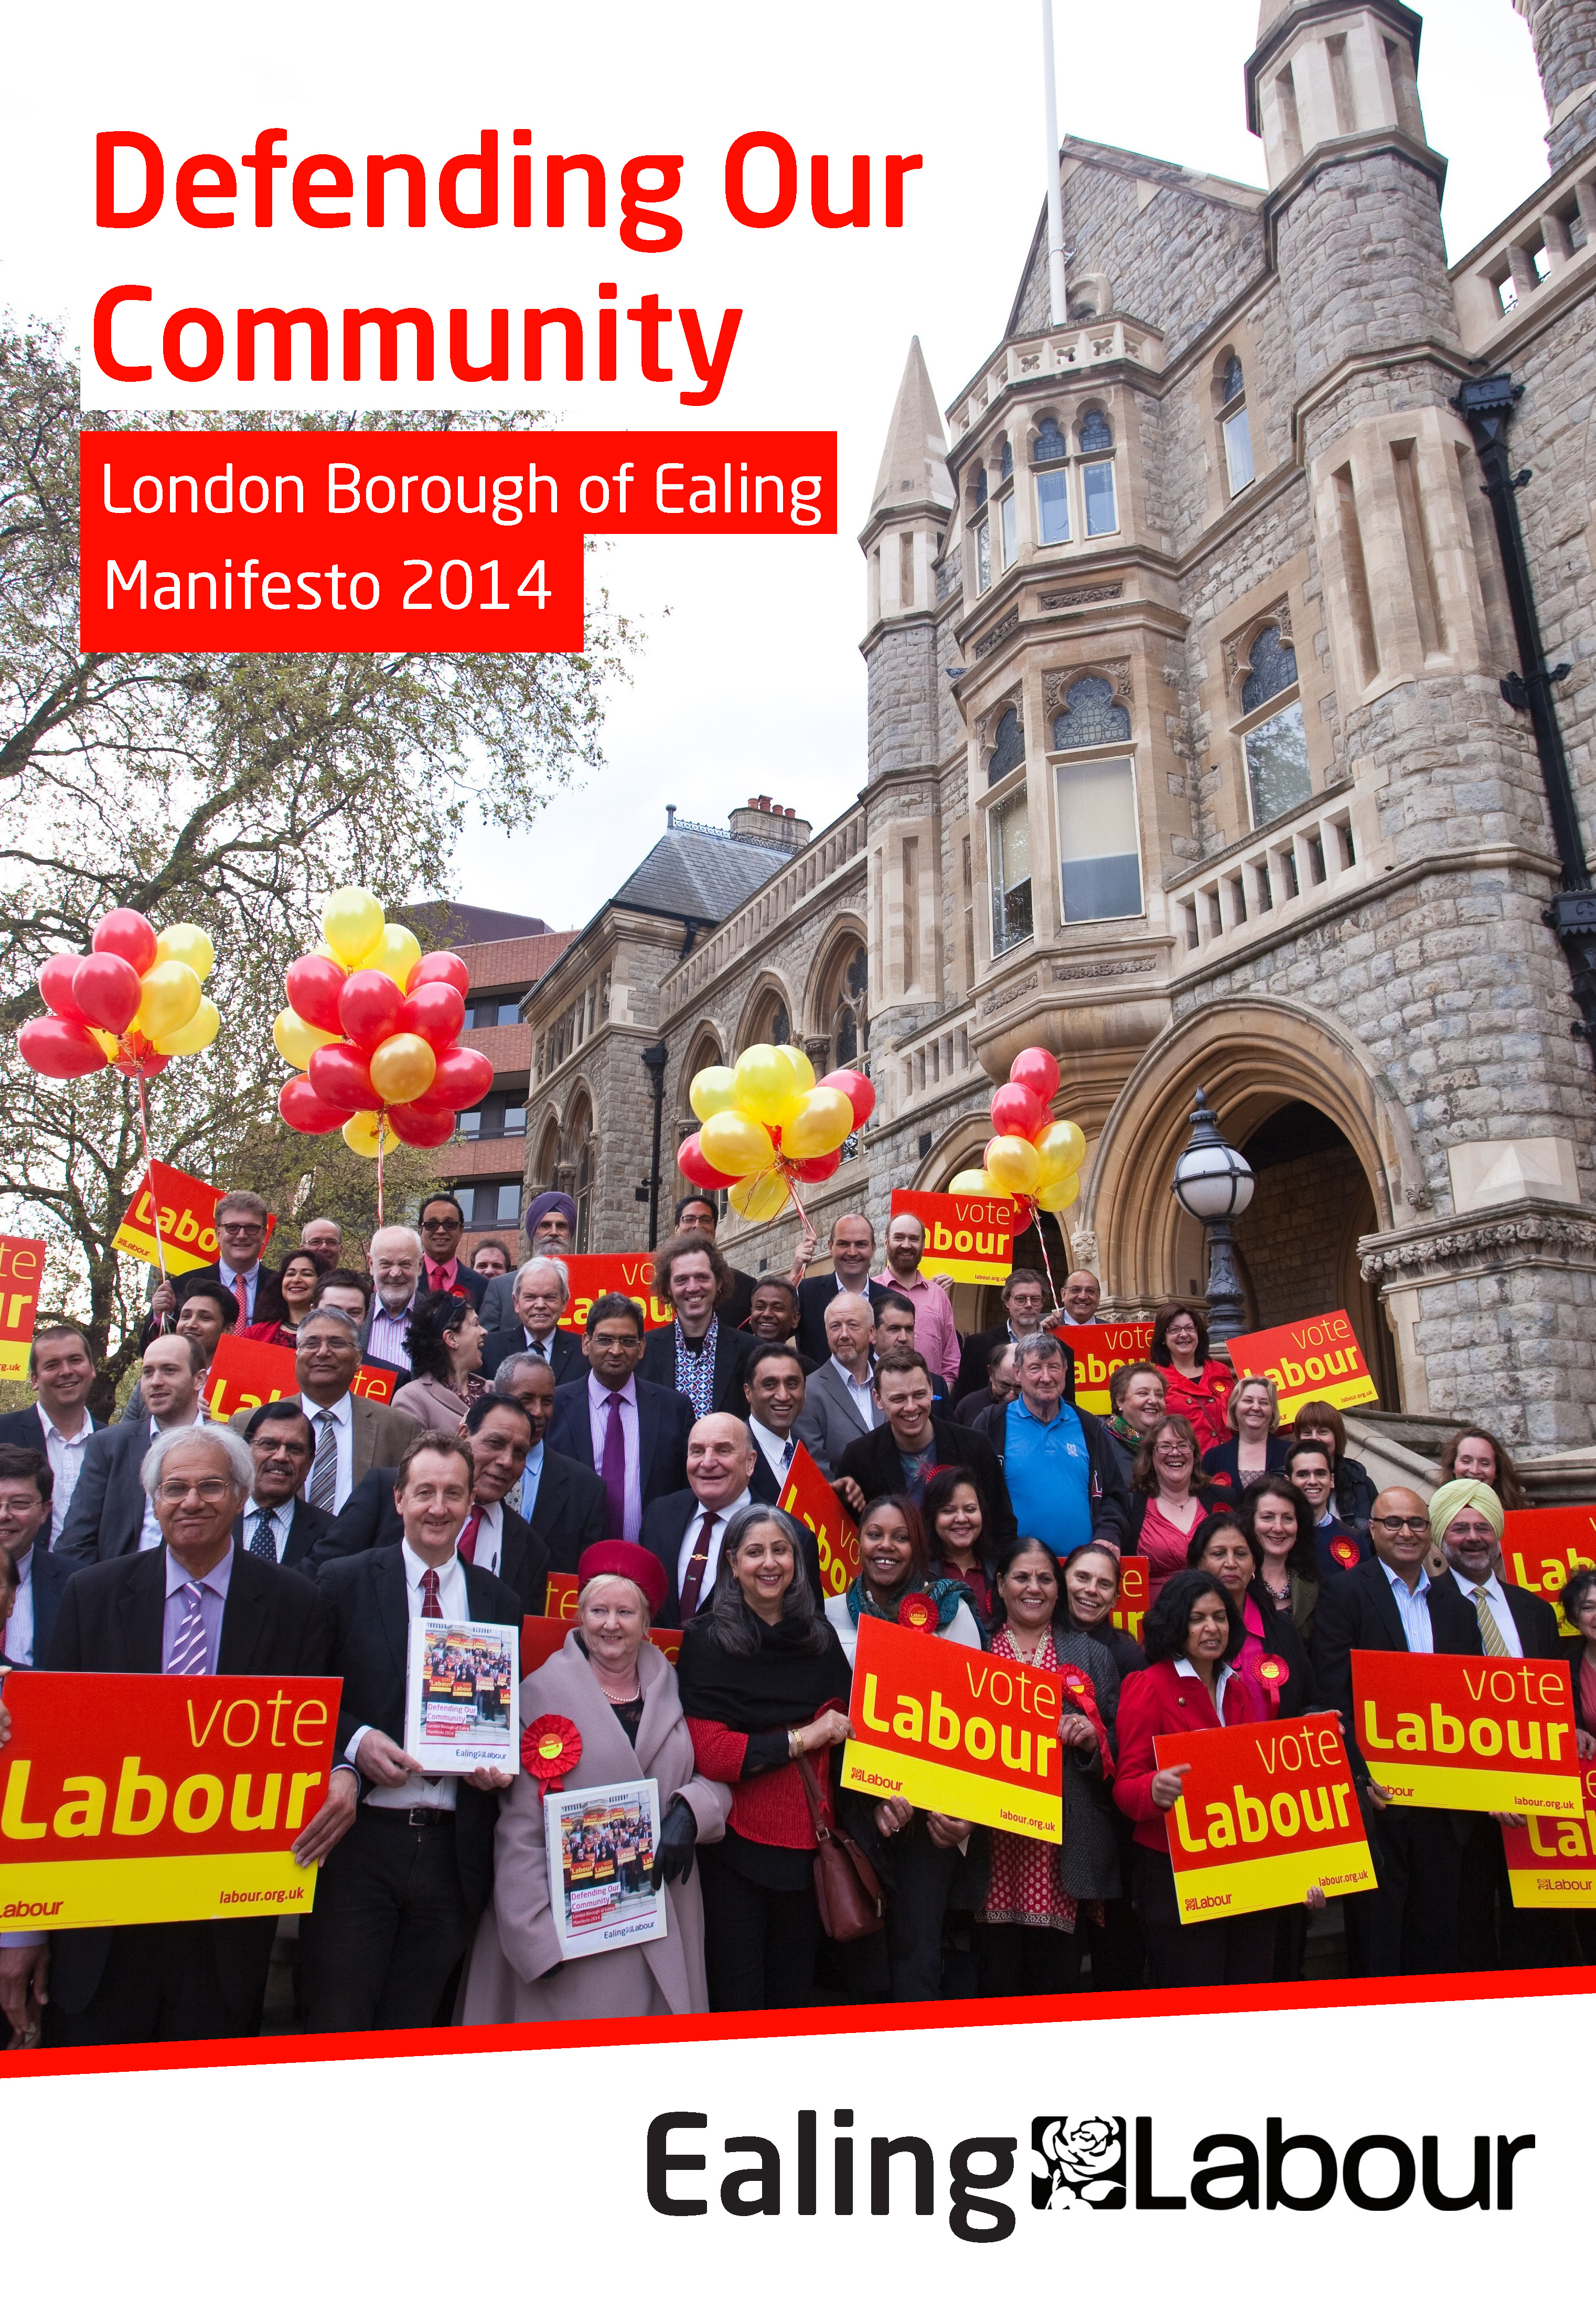 Ealing_labour_front_page.jpg